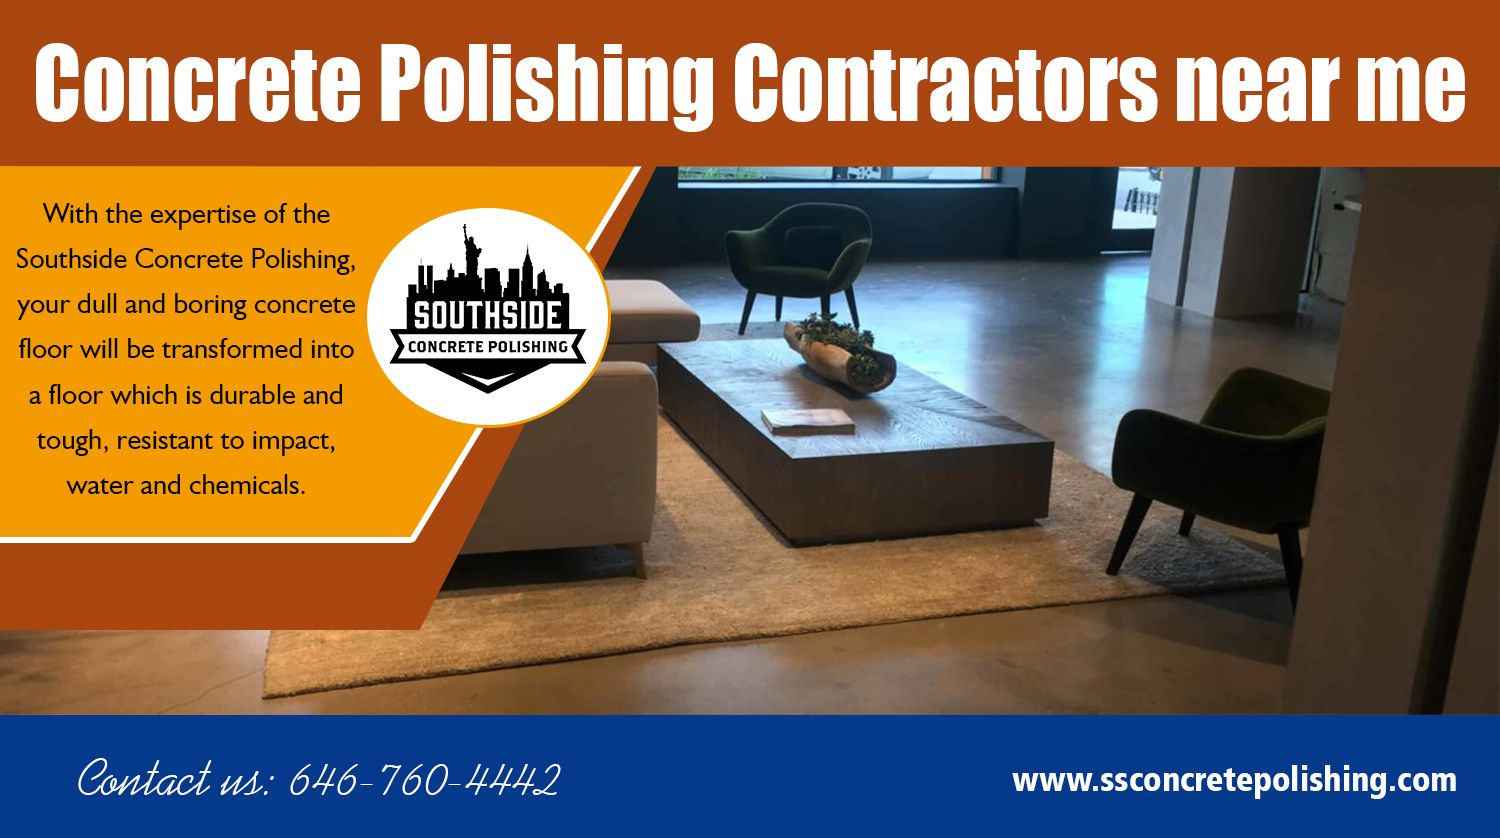 The role of Concrete polishing contractors near me